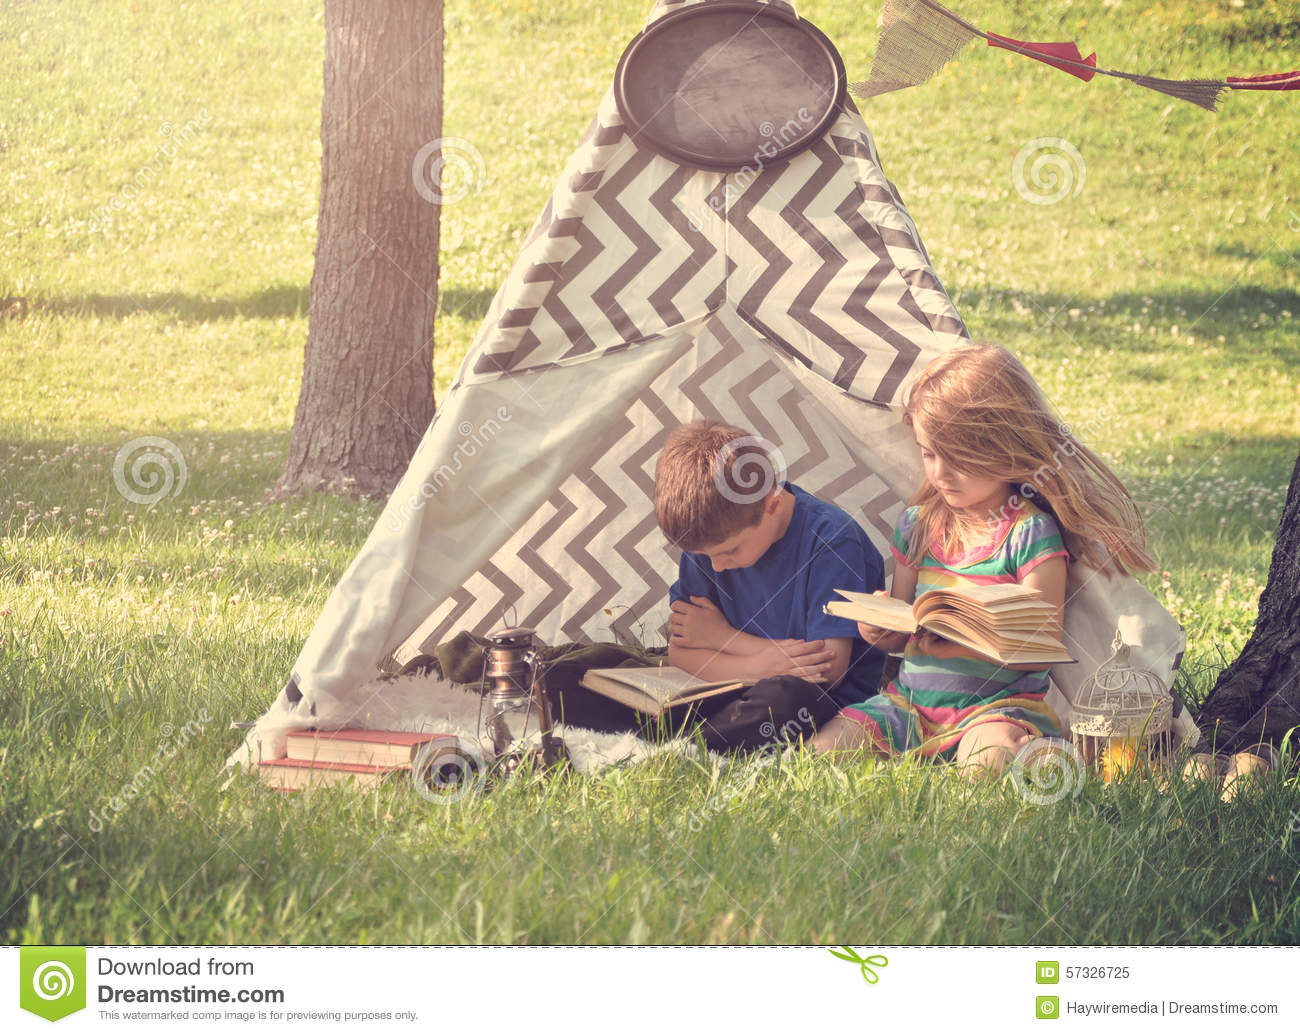 Kids Reading Books Outside in Tent Teepee